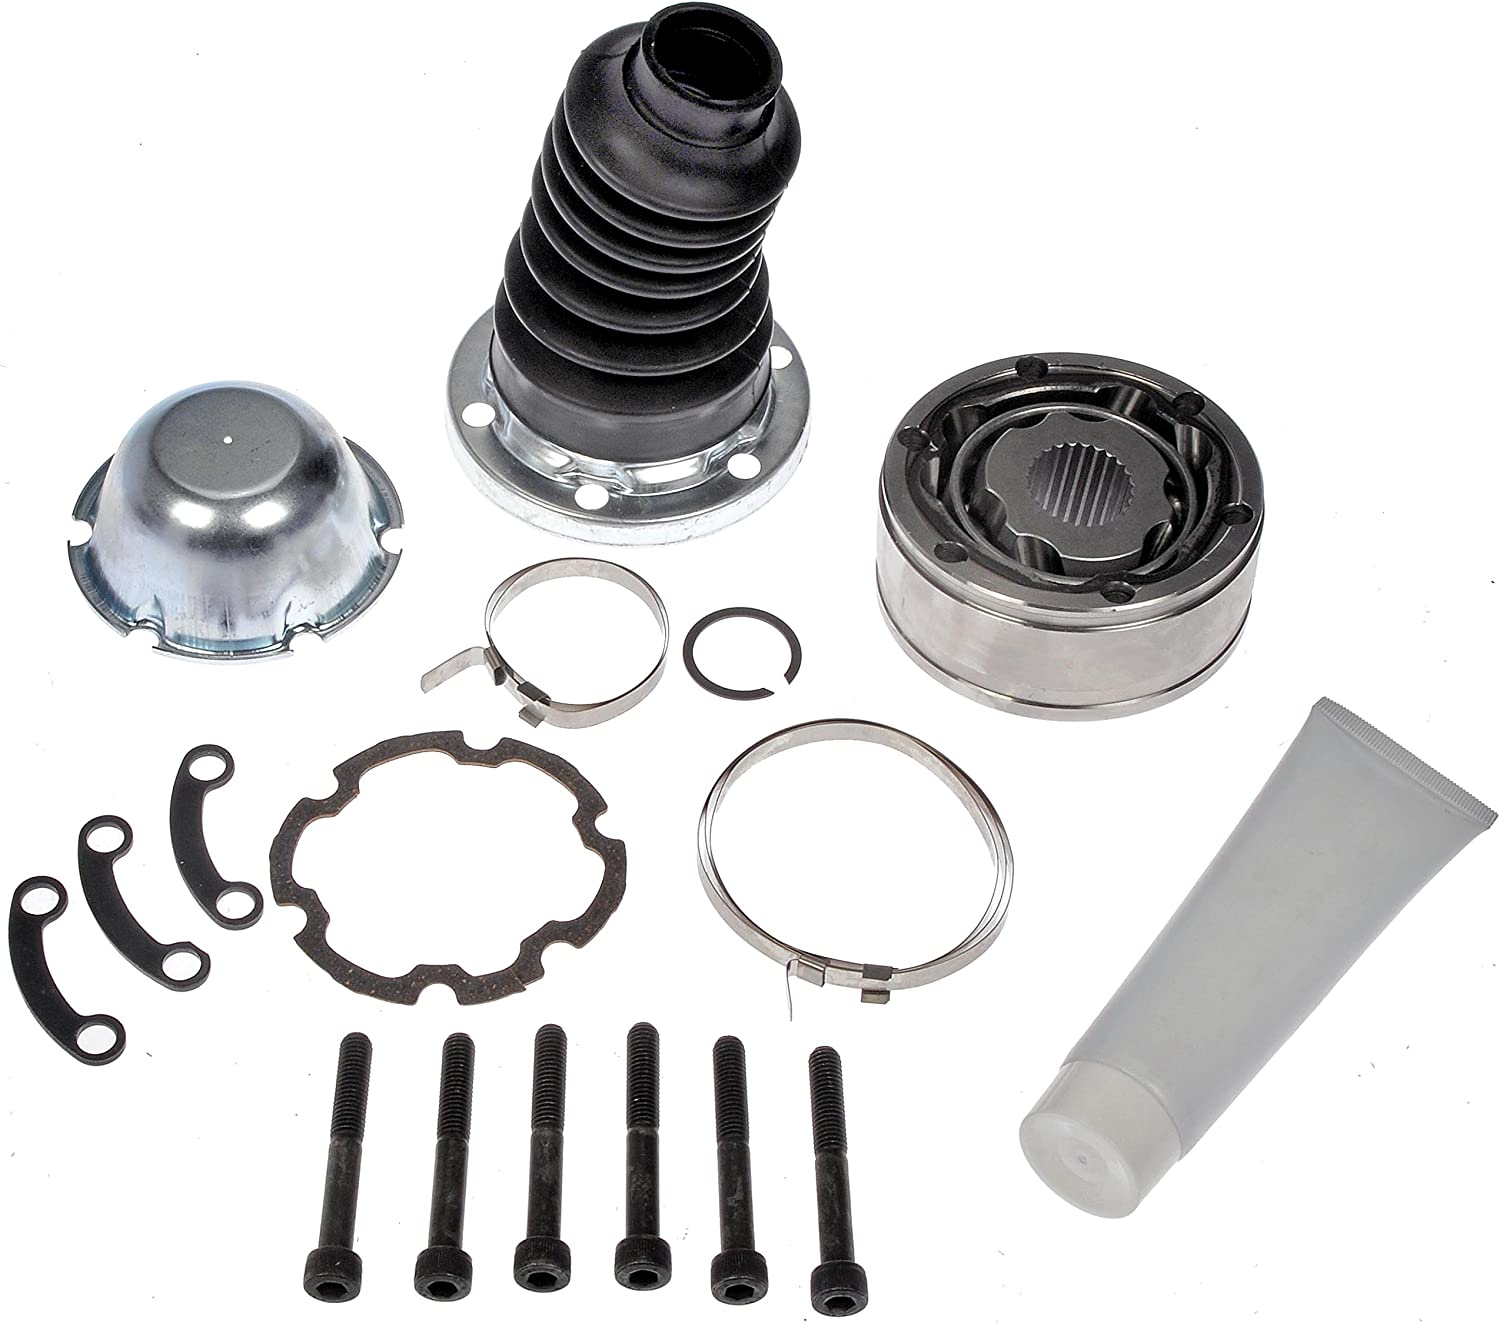 Mercury Models Dorman 932-202 Rear Drive Shaft CV Joint Kit for Select Ford Mazda